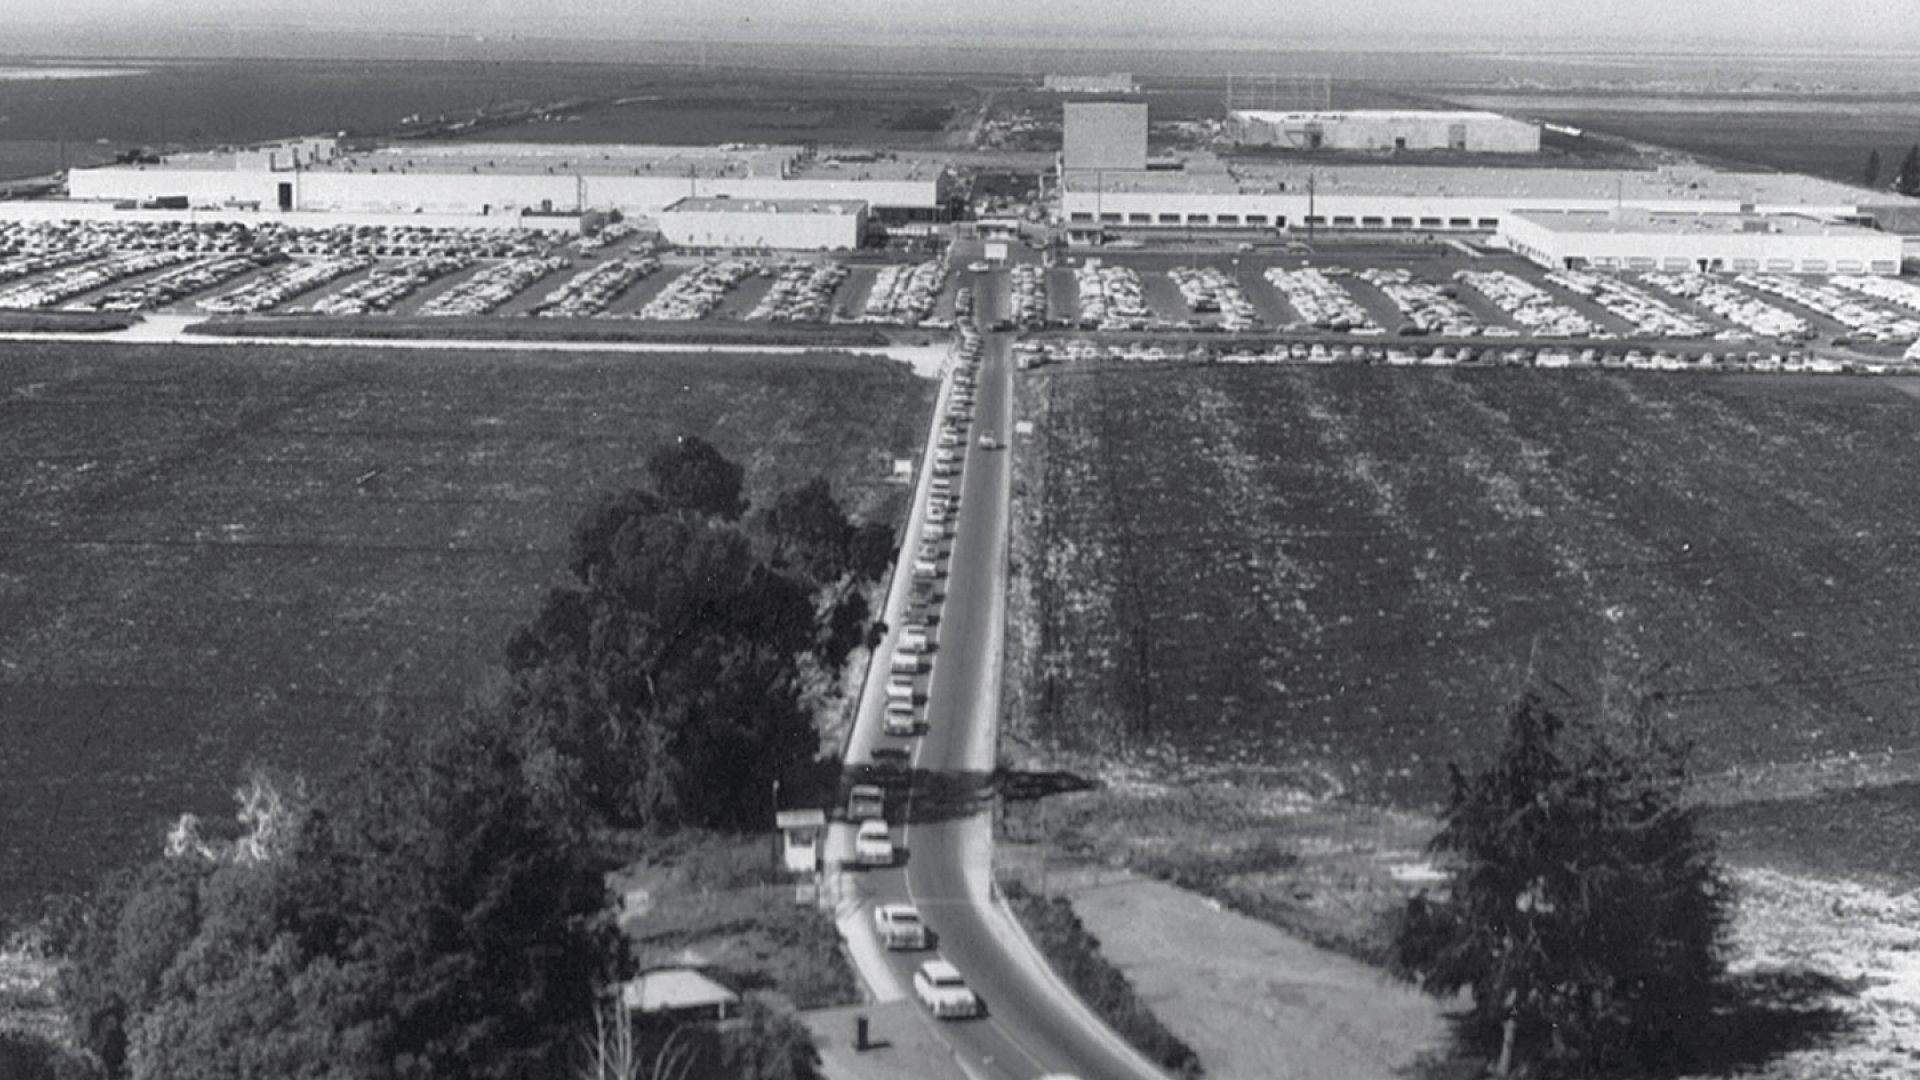 <b>Silicon Valley, Pre-Silicon</b> The Valley emerged during the Cold War, when this Lockheed plant began building ballistic missiles.